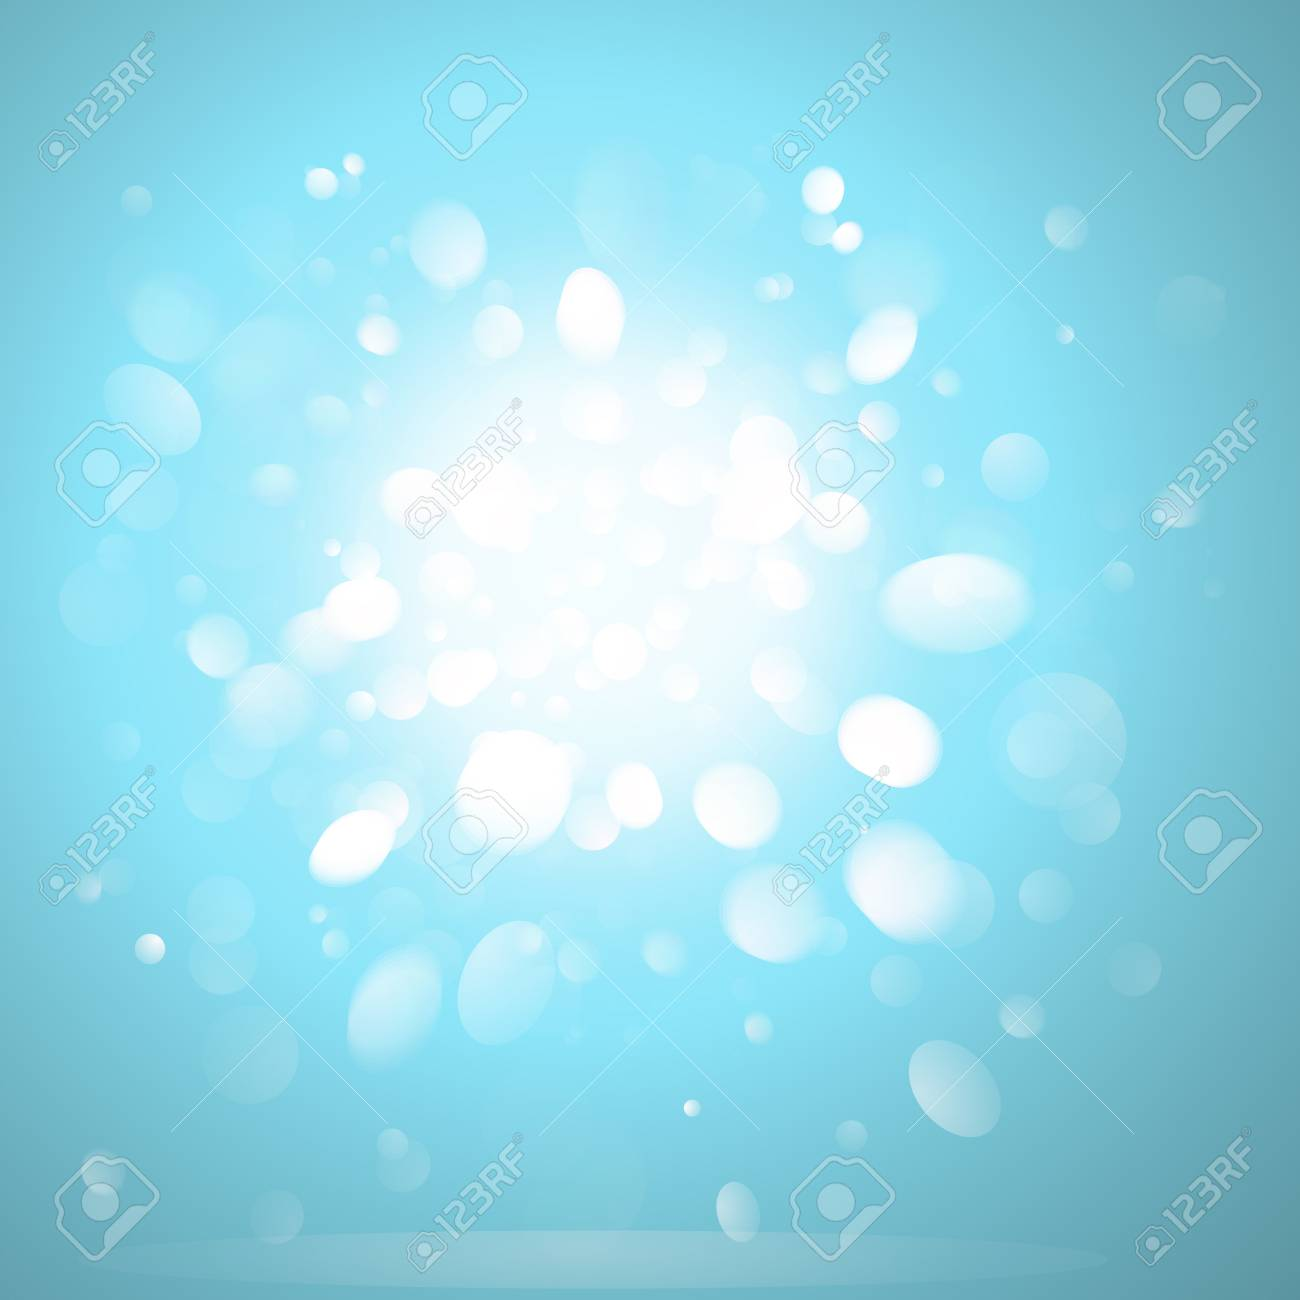 Blurred glowing background effect vector - 125239665